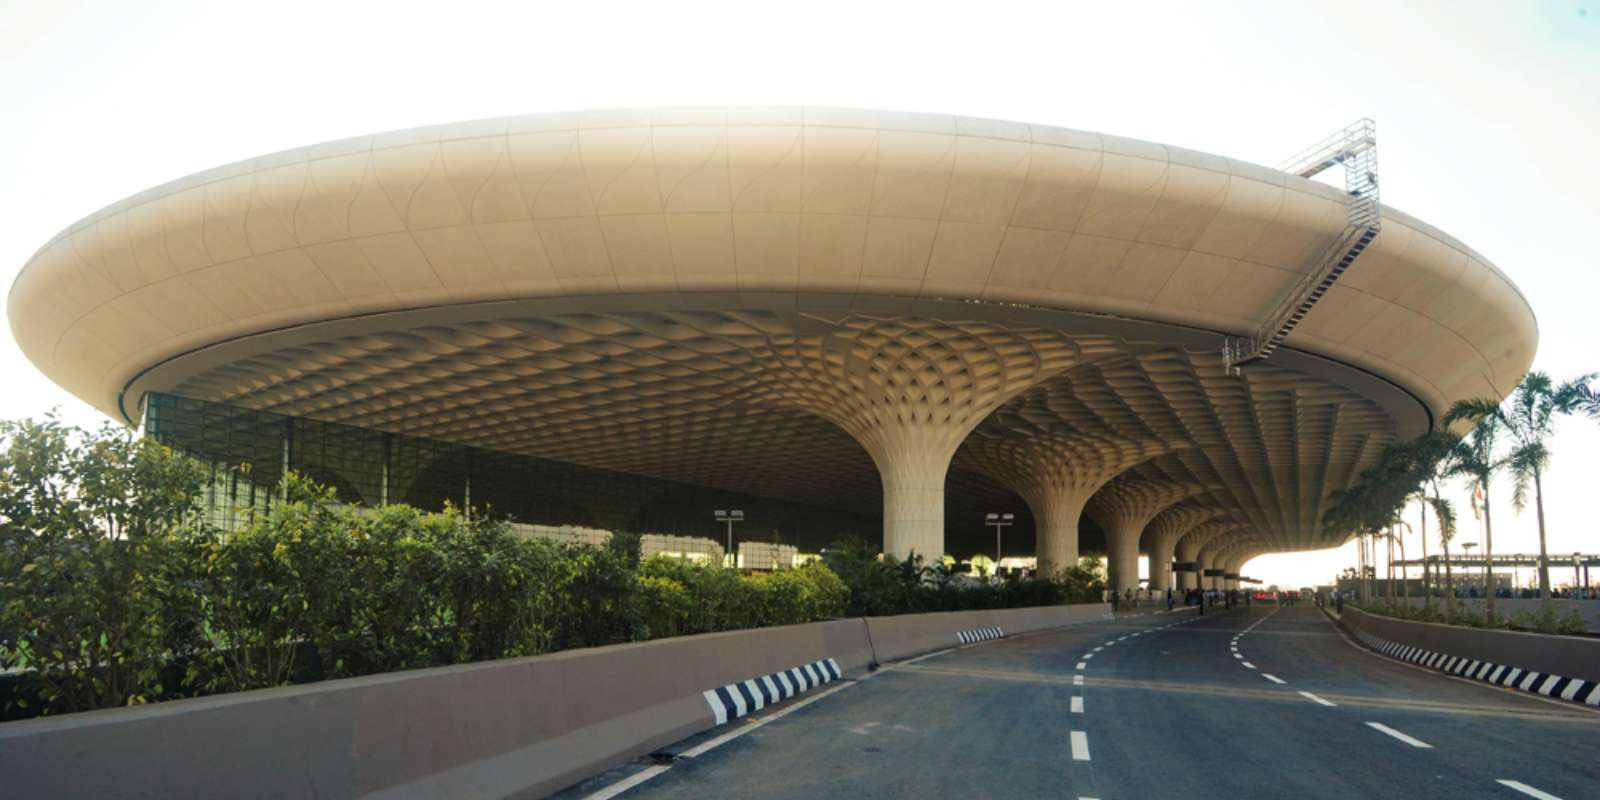 Open the Chhatrapati Shivaji International Airport